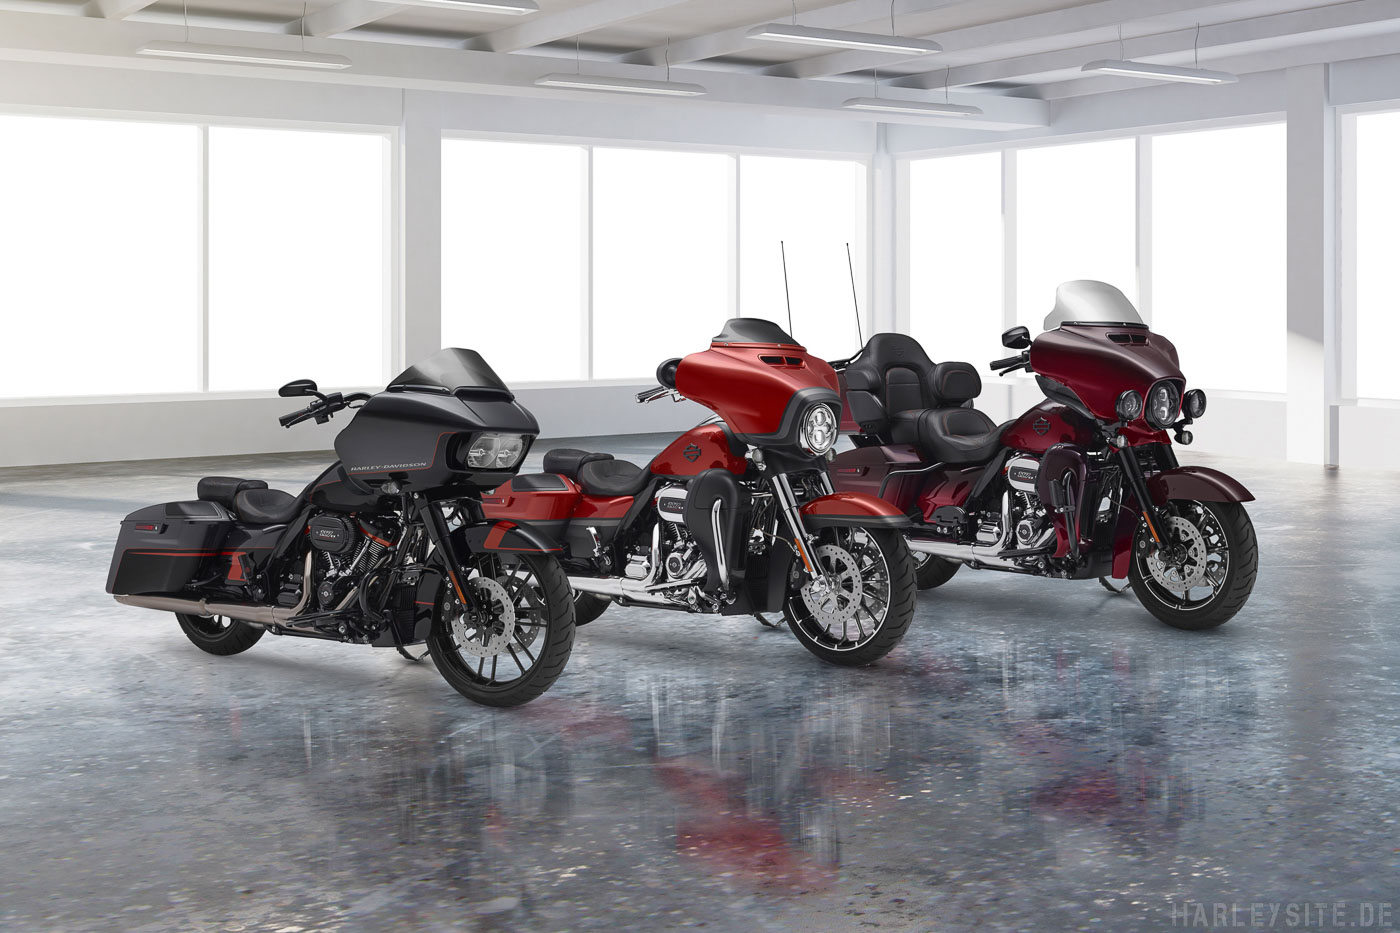 FIVE STUNNING NEW TOURING BIKES FOR 2018